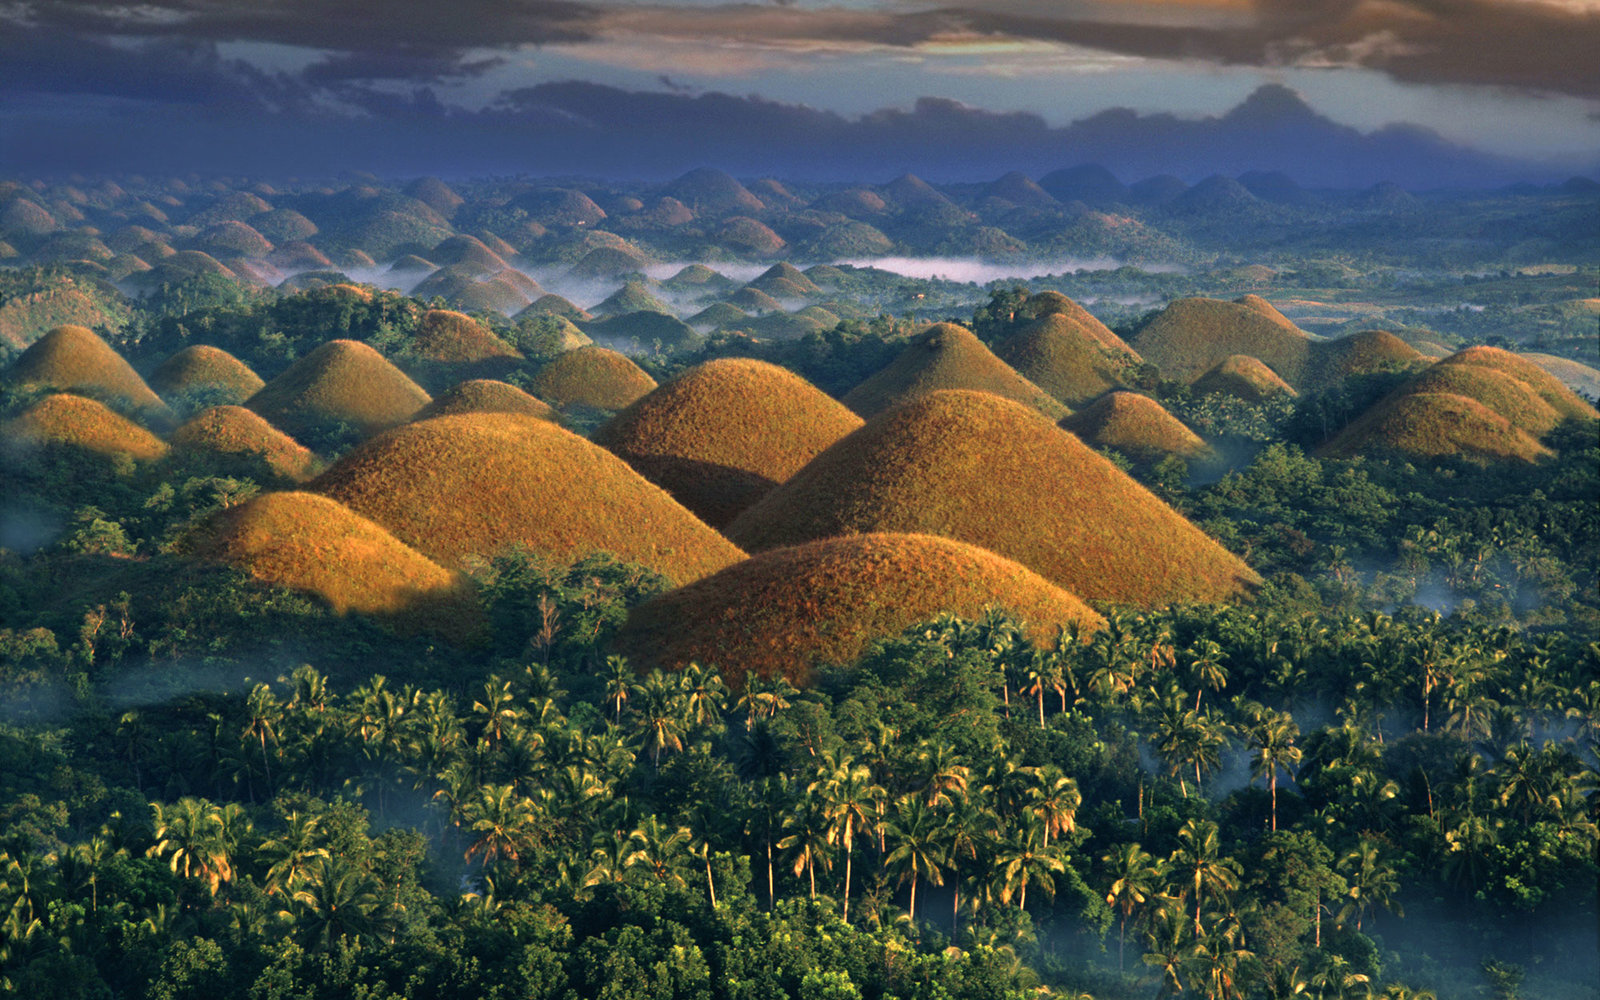 The 'Chocolate Hills' Are a Mysterious Landscape Worthy of Any Bucket List